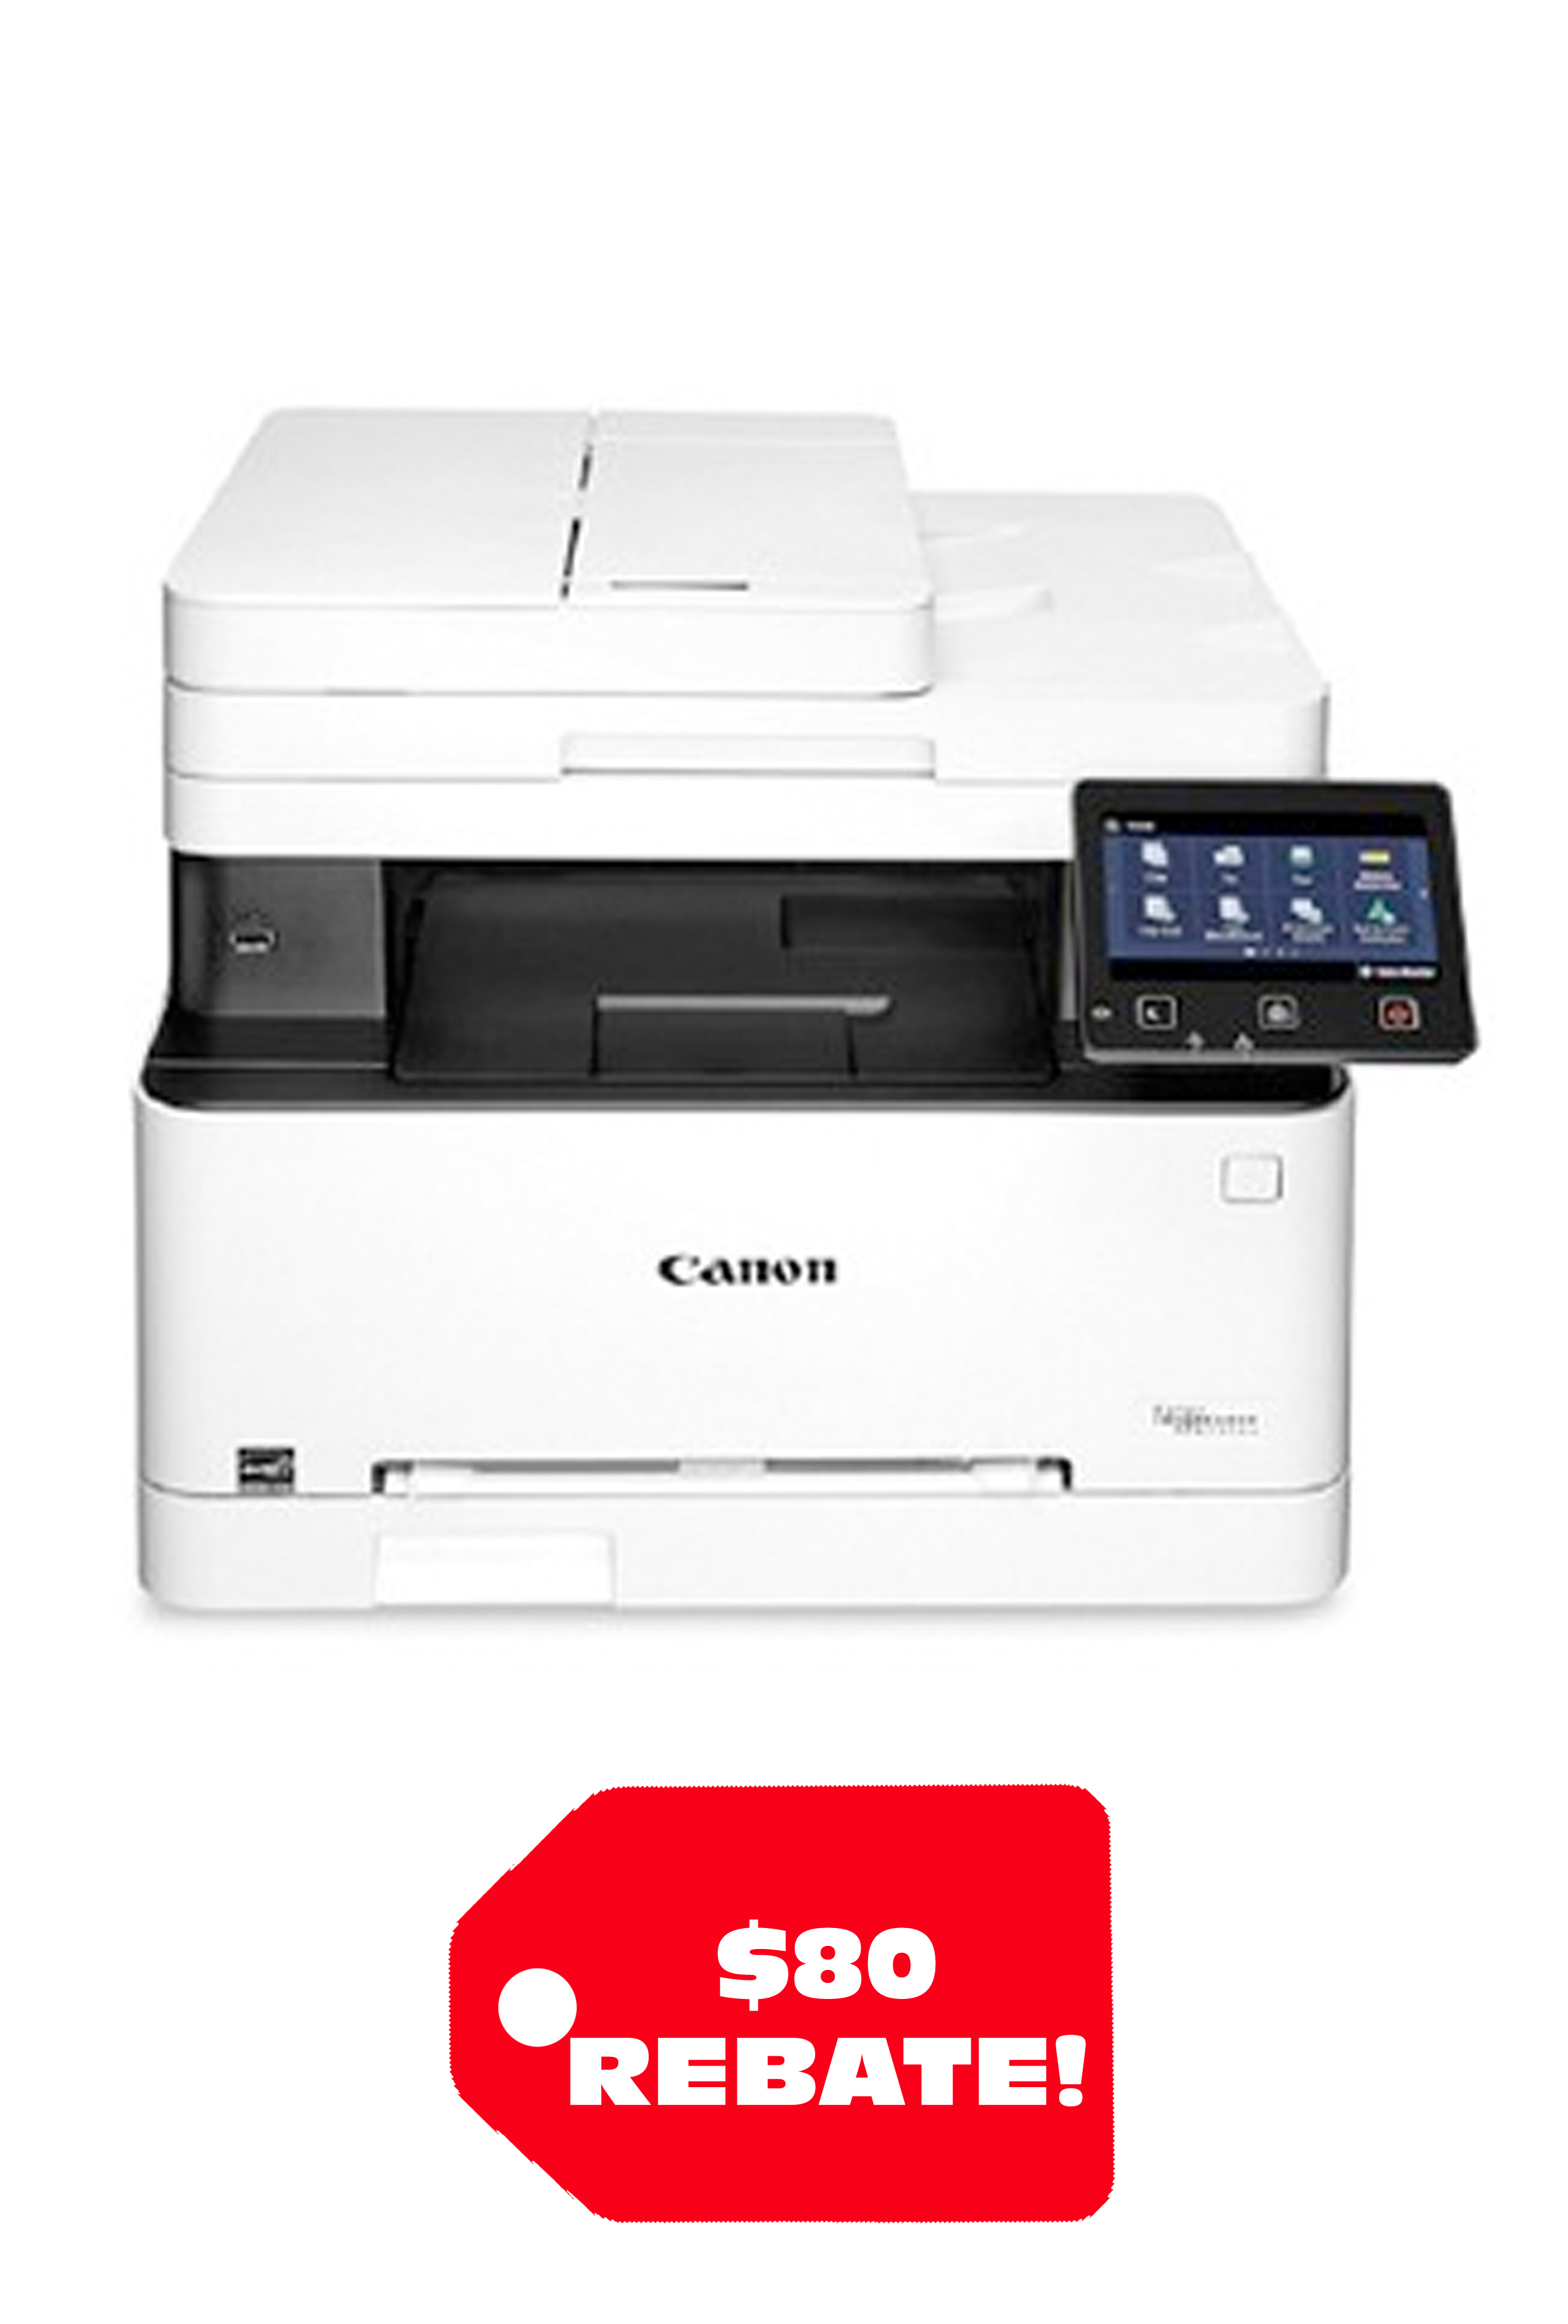 Canon Color imageCLASS MF644Cdw - All in One (22ppm)